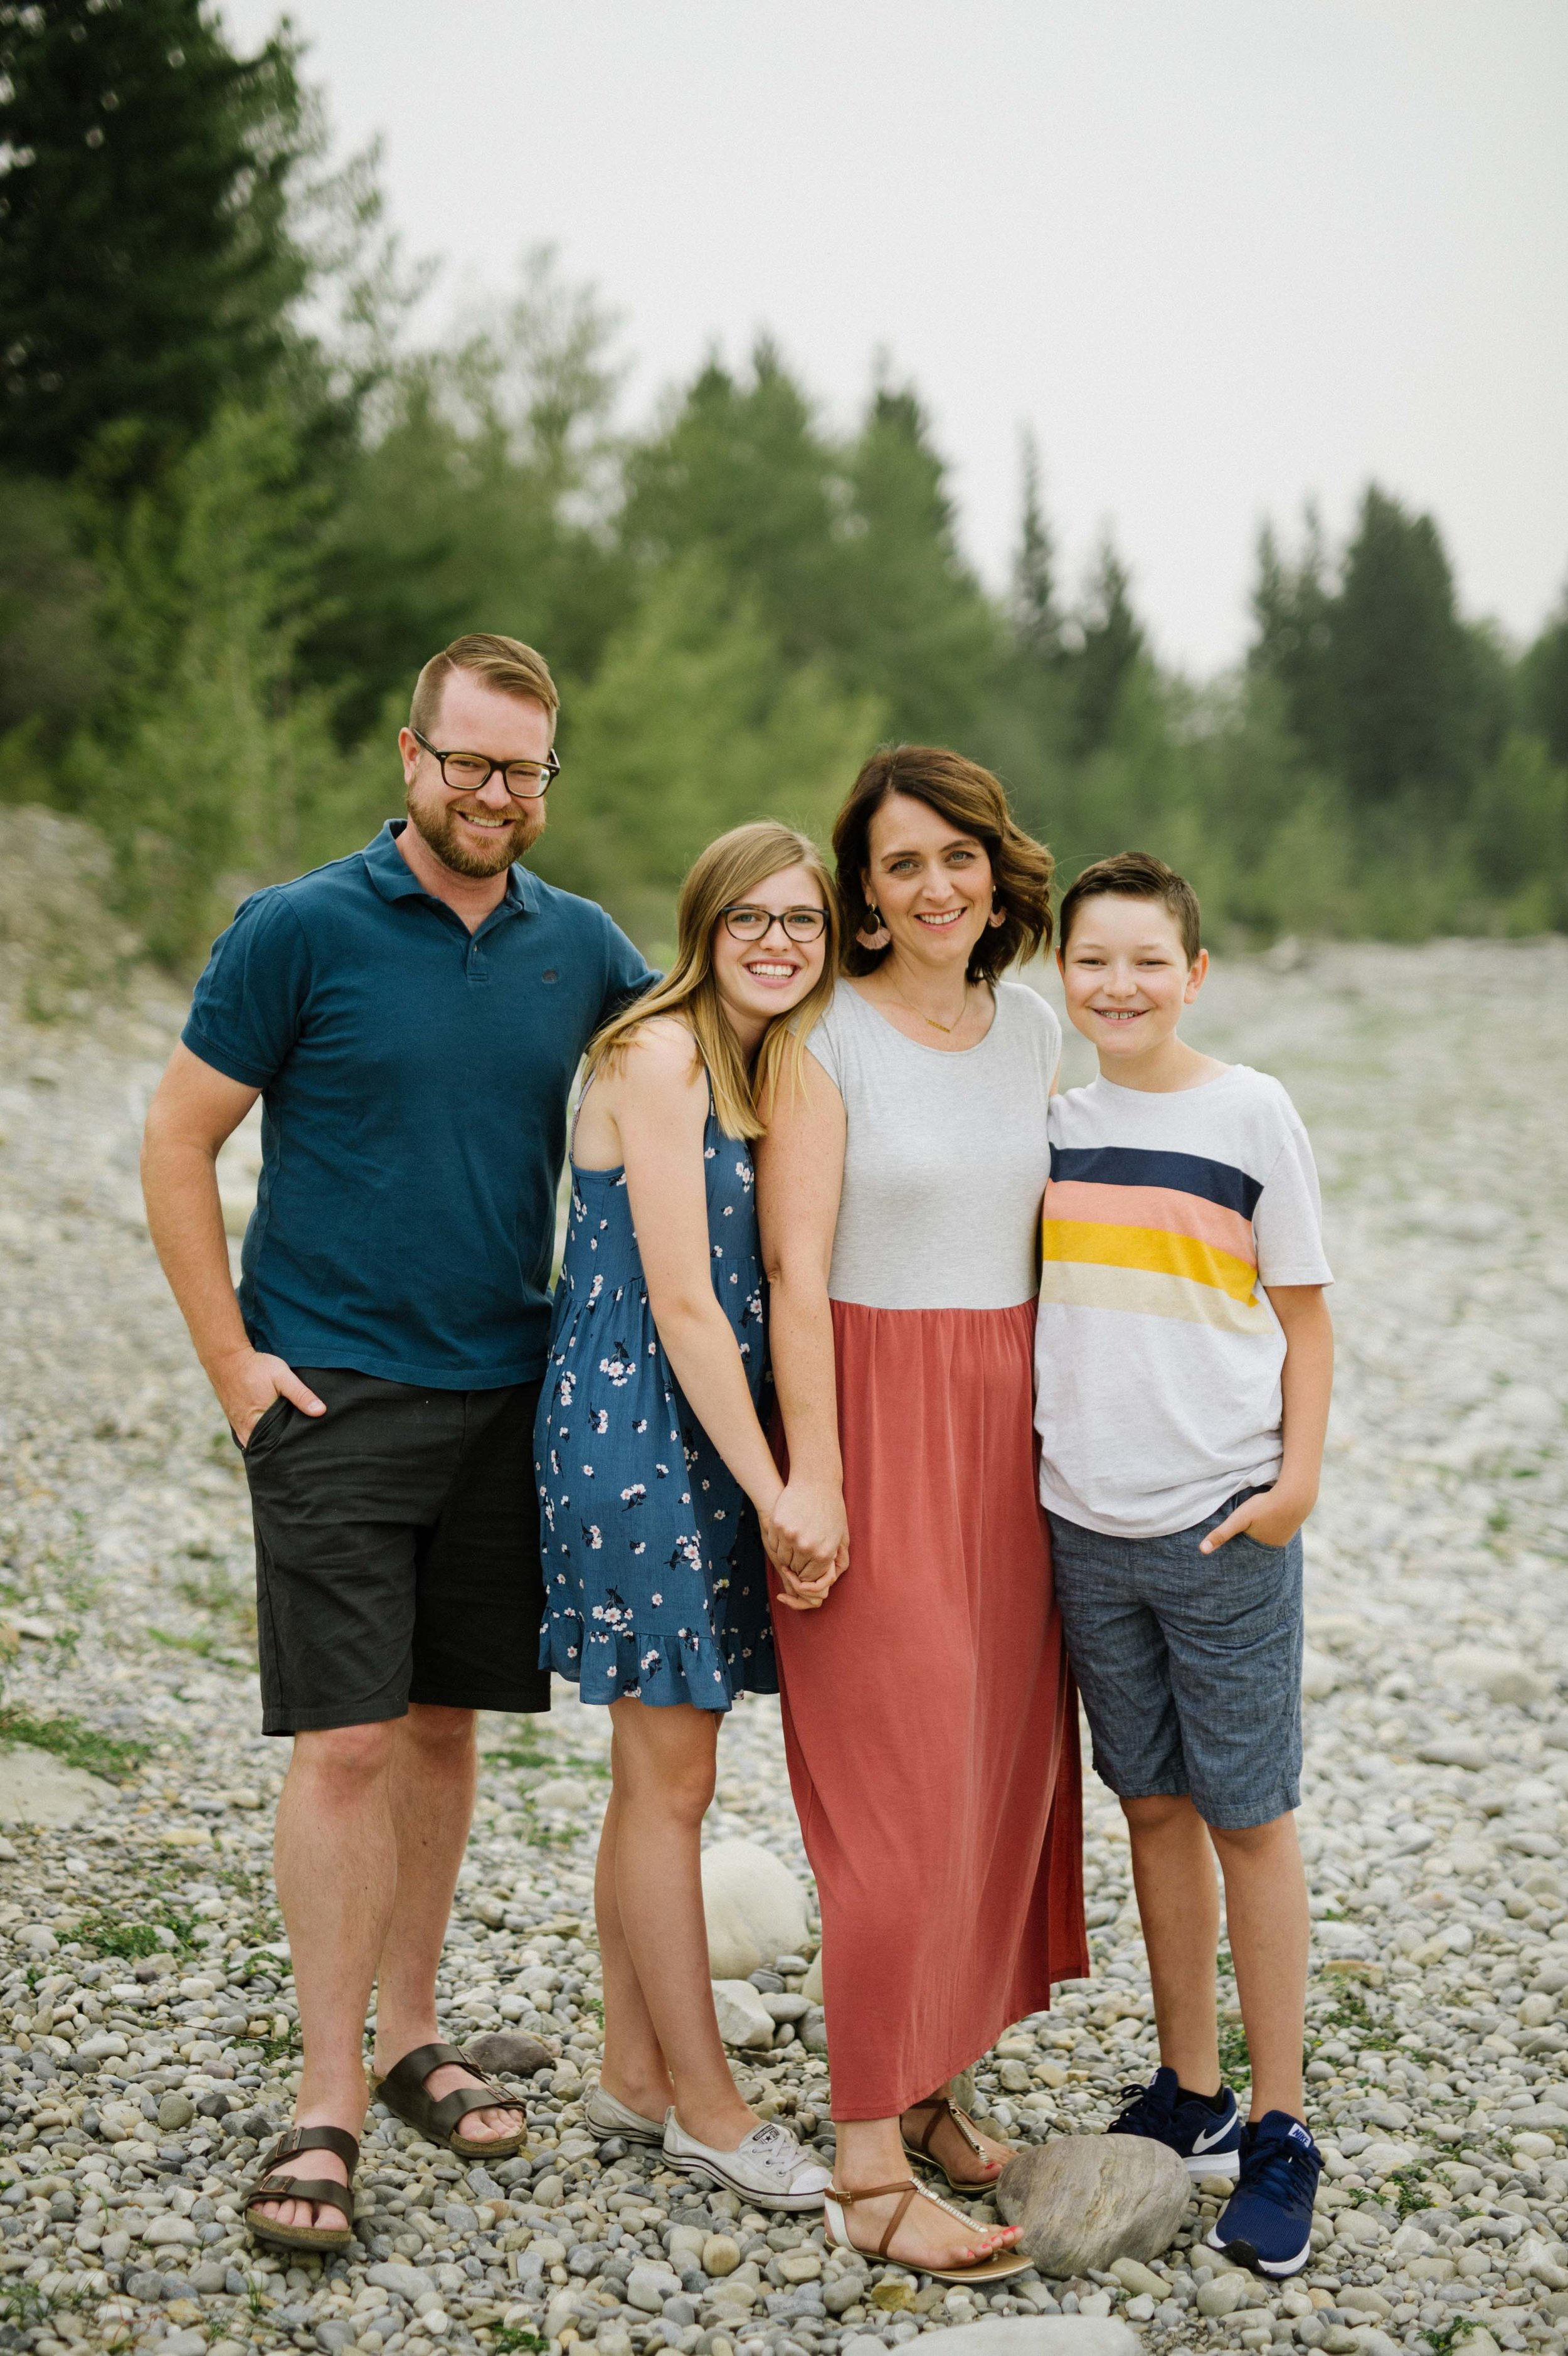 Christy-D-Swanberg-Photography-Calgary-maternity-lifestyle-portraits-family-baby-08.jpg